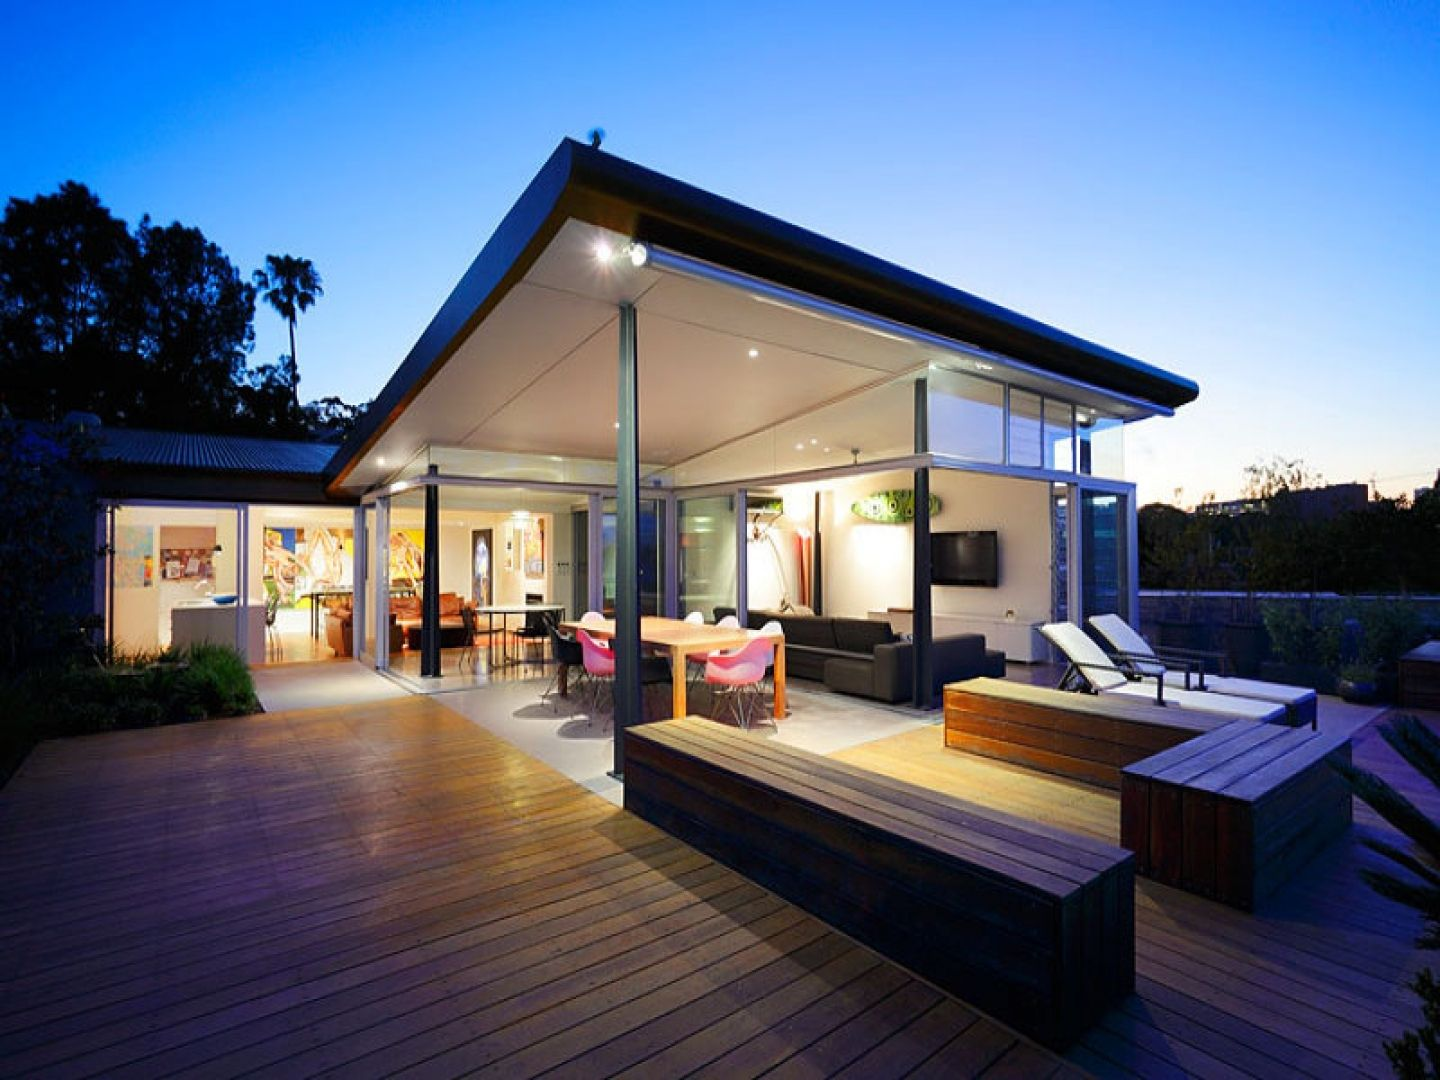 Pleasant 17 Best Images About Dwellings On Pinterest Small Modern House Largest Home Design Picture Inspirations Pitcheantrous